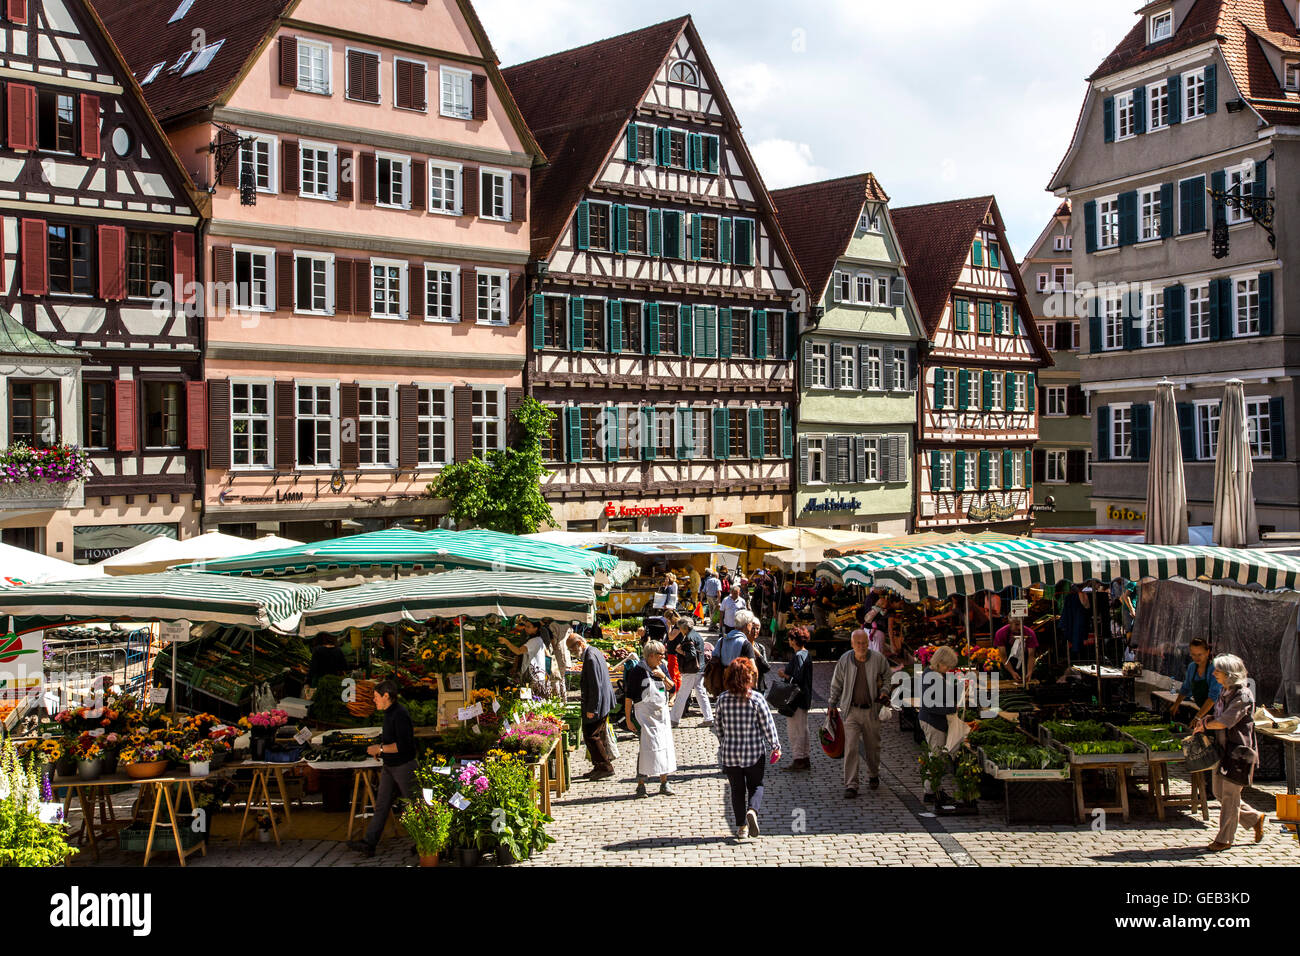 Fresh weekly farmers market on the historic market place, in the old town of Tübingen, Germany Stock Photo